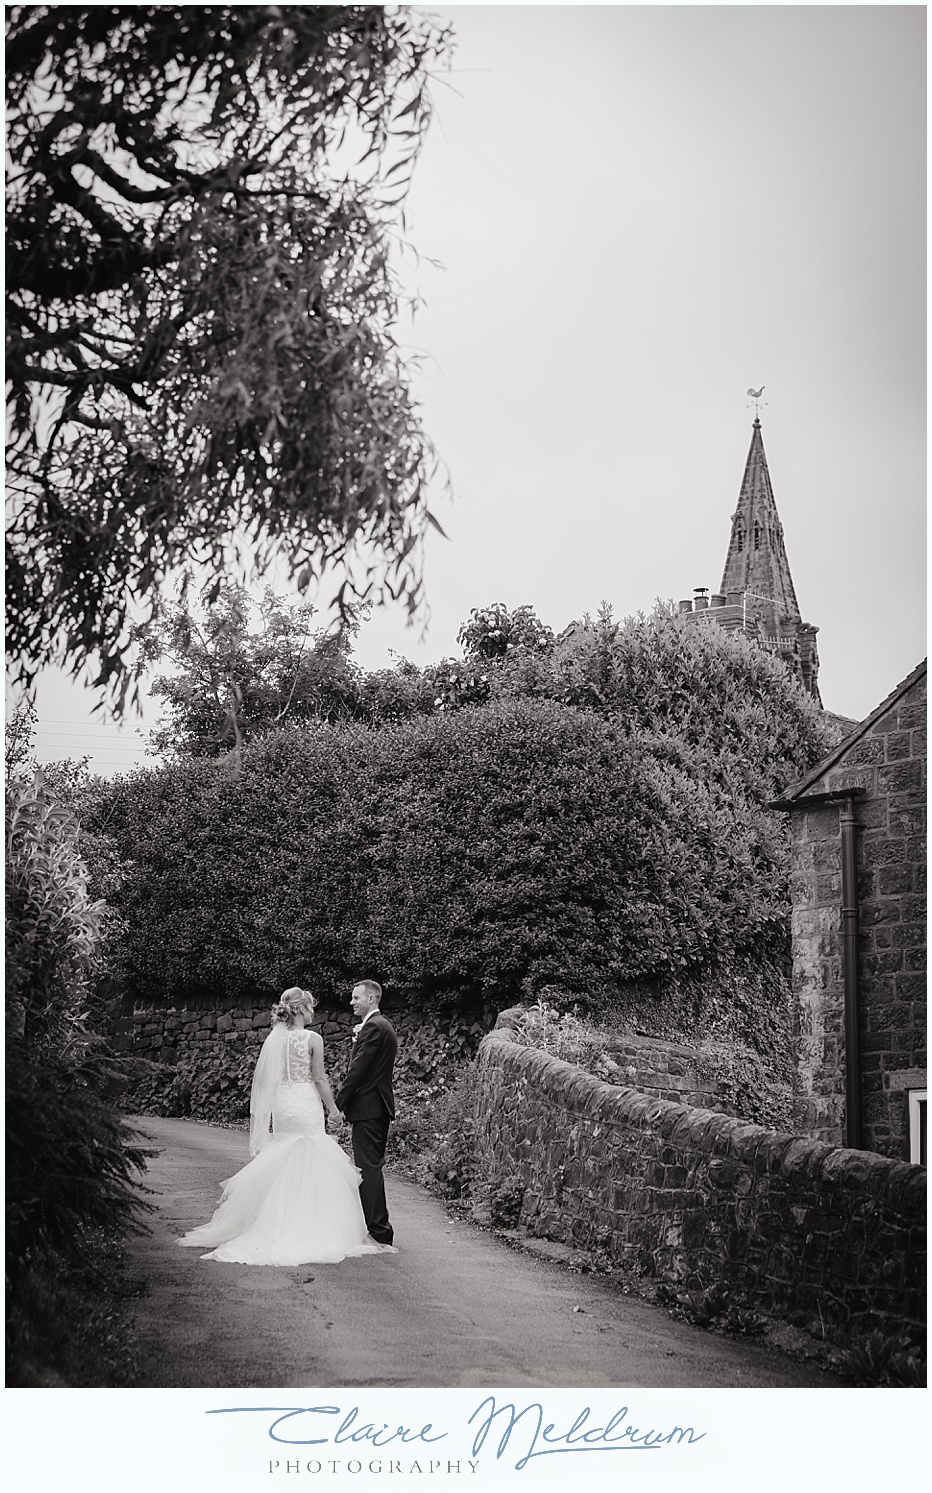 Claire Meldrum Photography